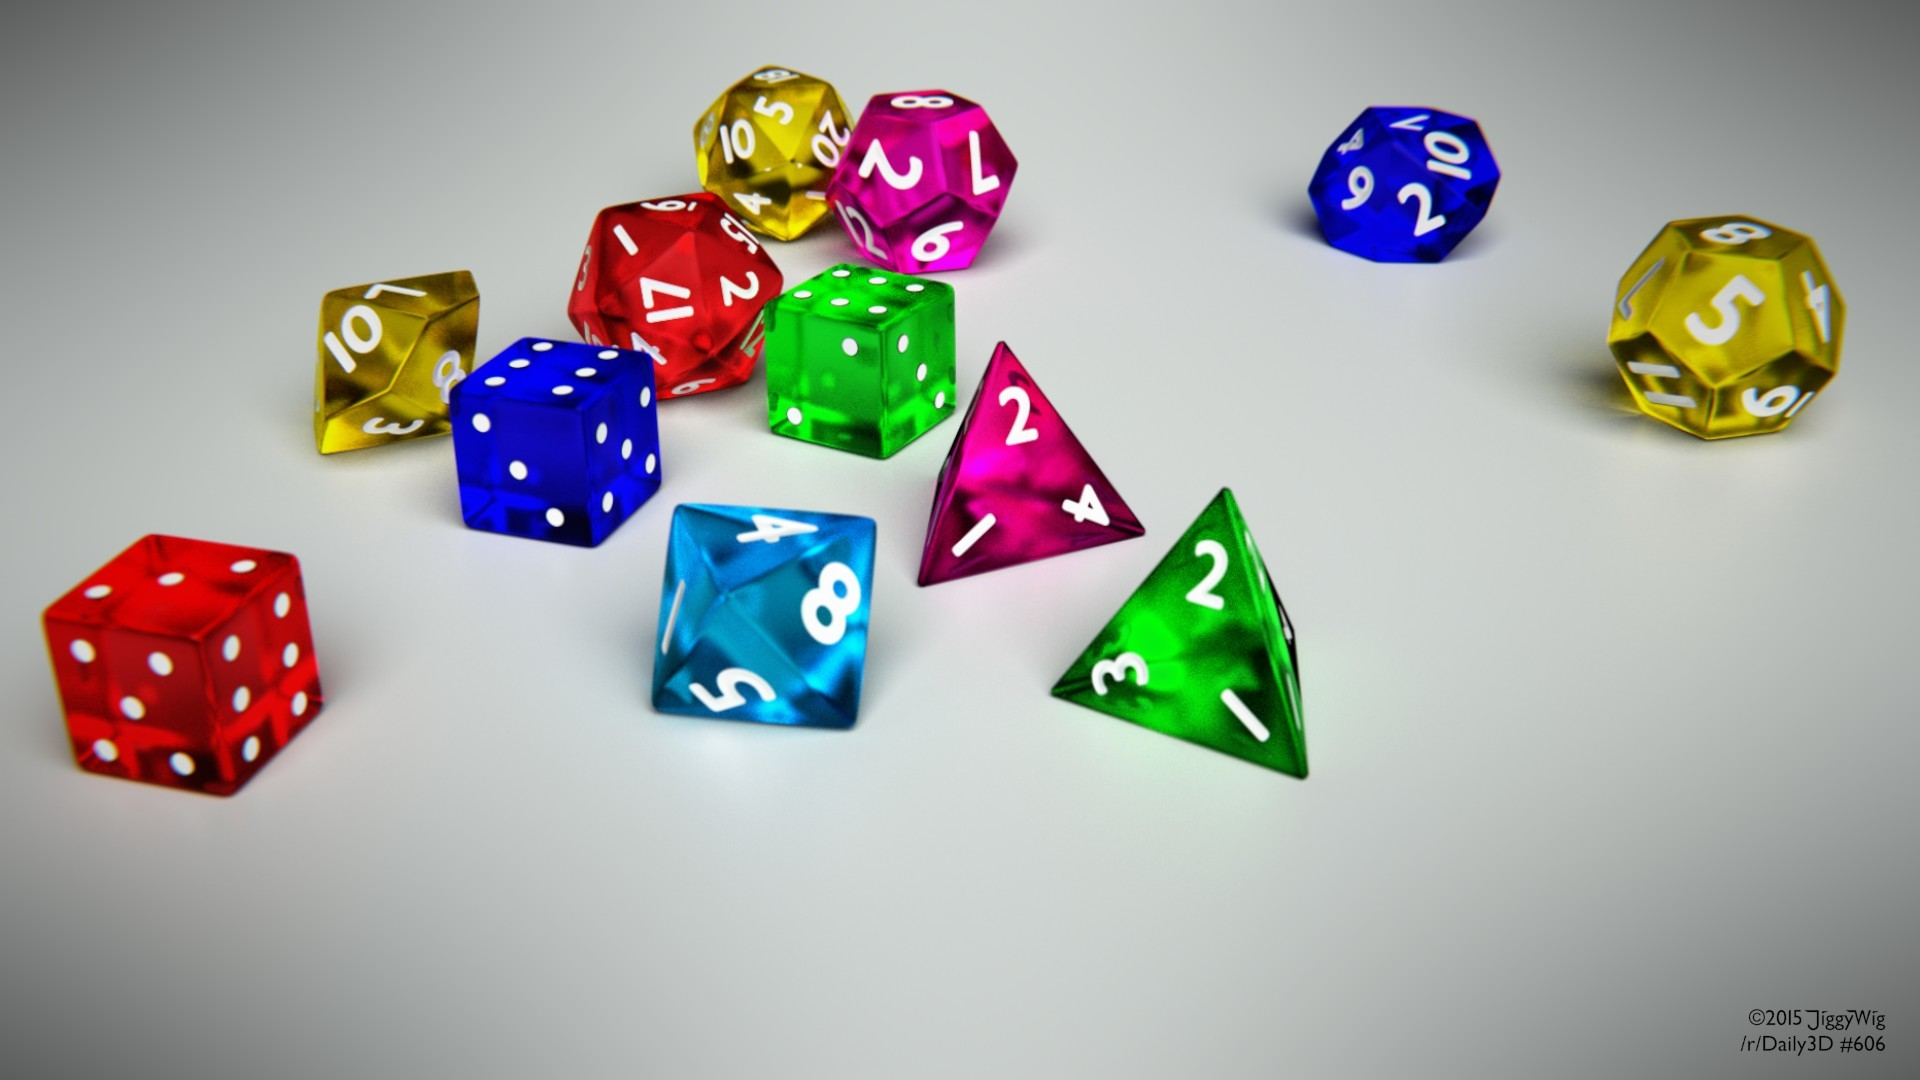 Here's my take on this Dice thing.